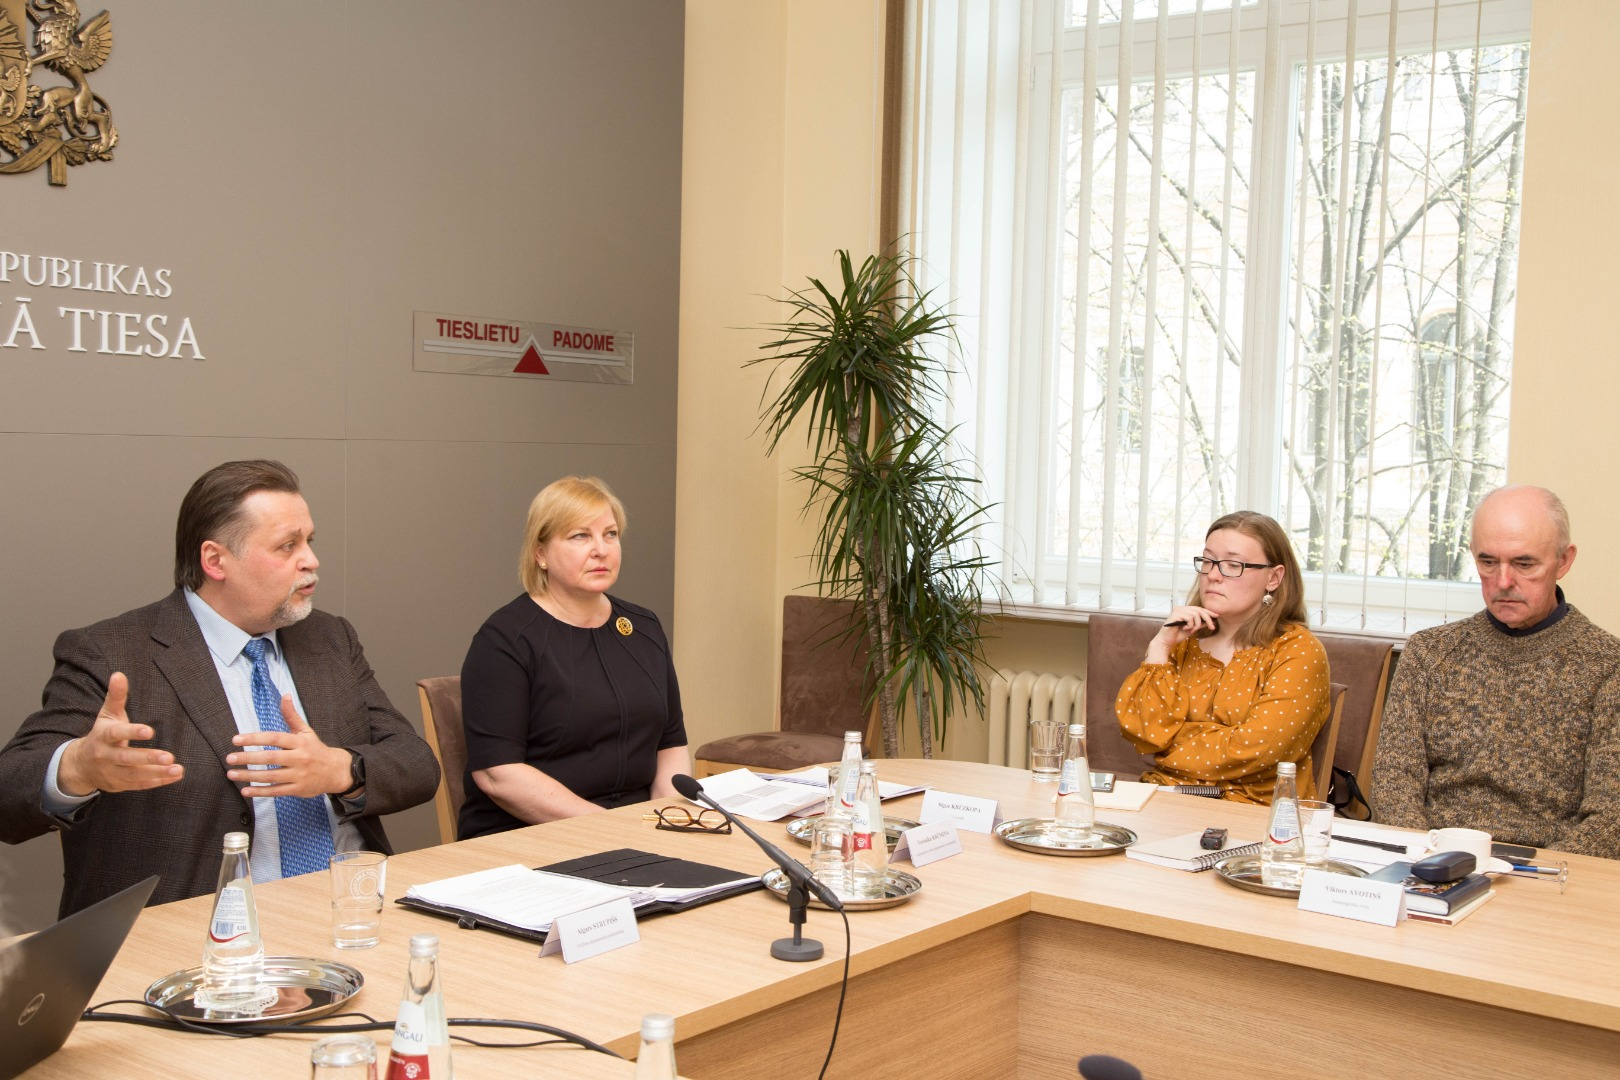 25.04.2019. On the Media Day the Chief Justice of the Supreme Court and chairs of the departments informed the journalists about the topicalities of the Supreme Court and the judiciary, as well as about the most important rulings of the Senate, which established the case-law and could be useful and interesting in the work of journalists.